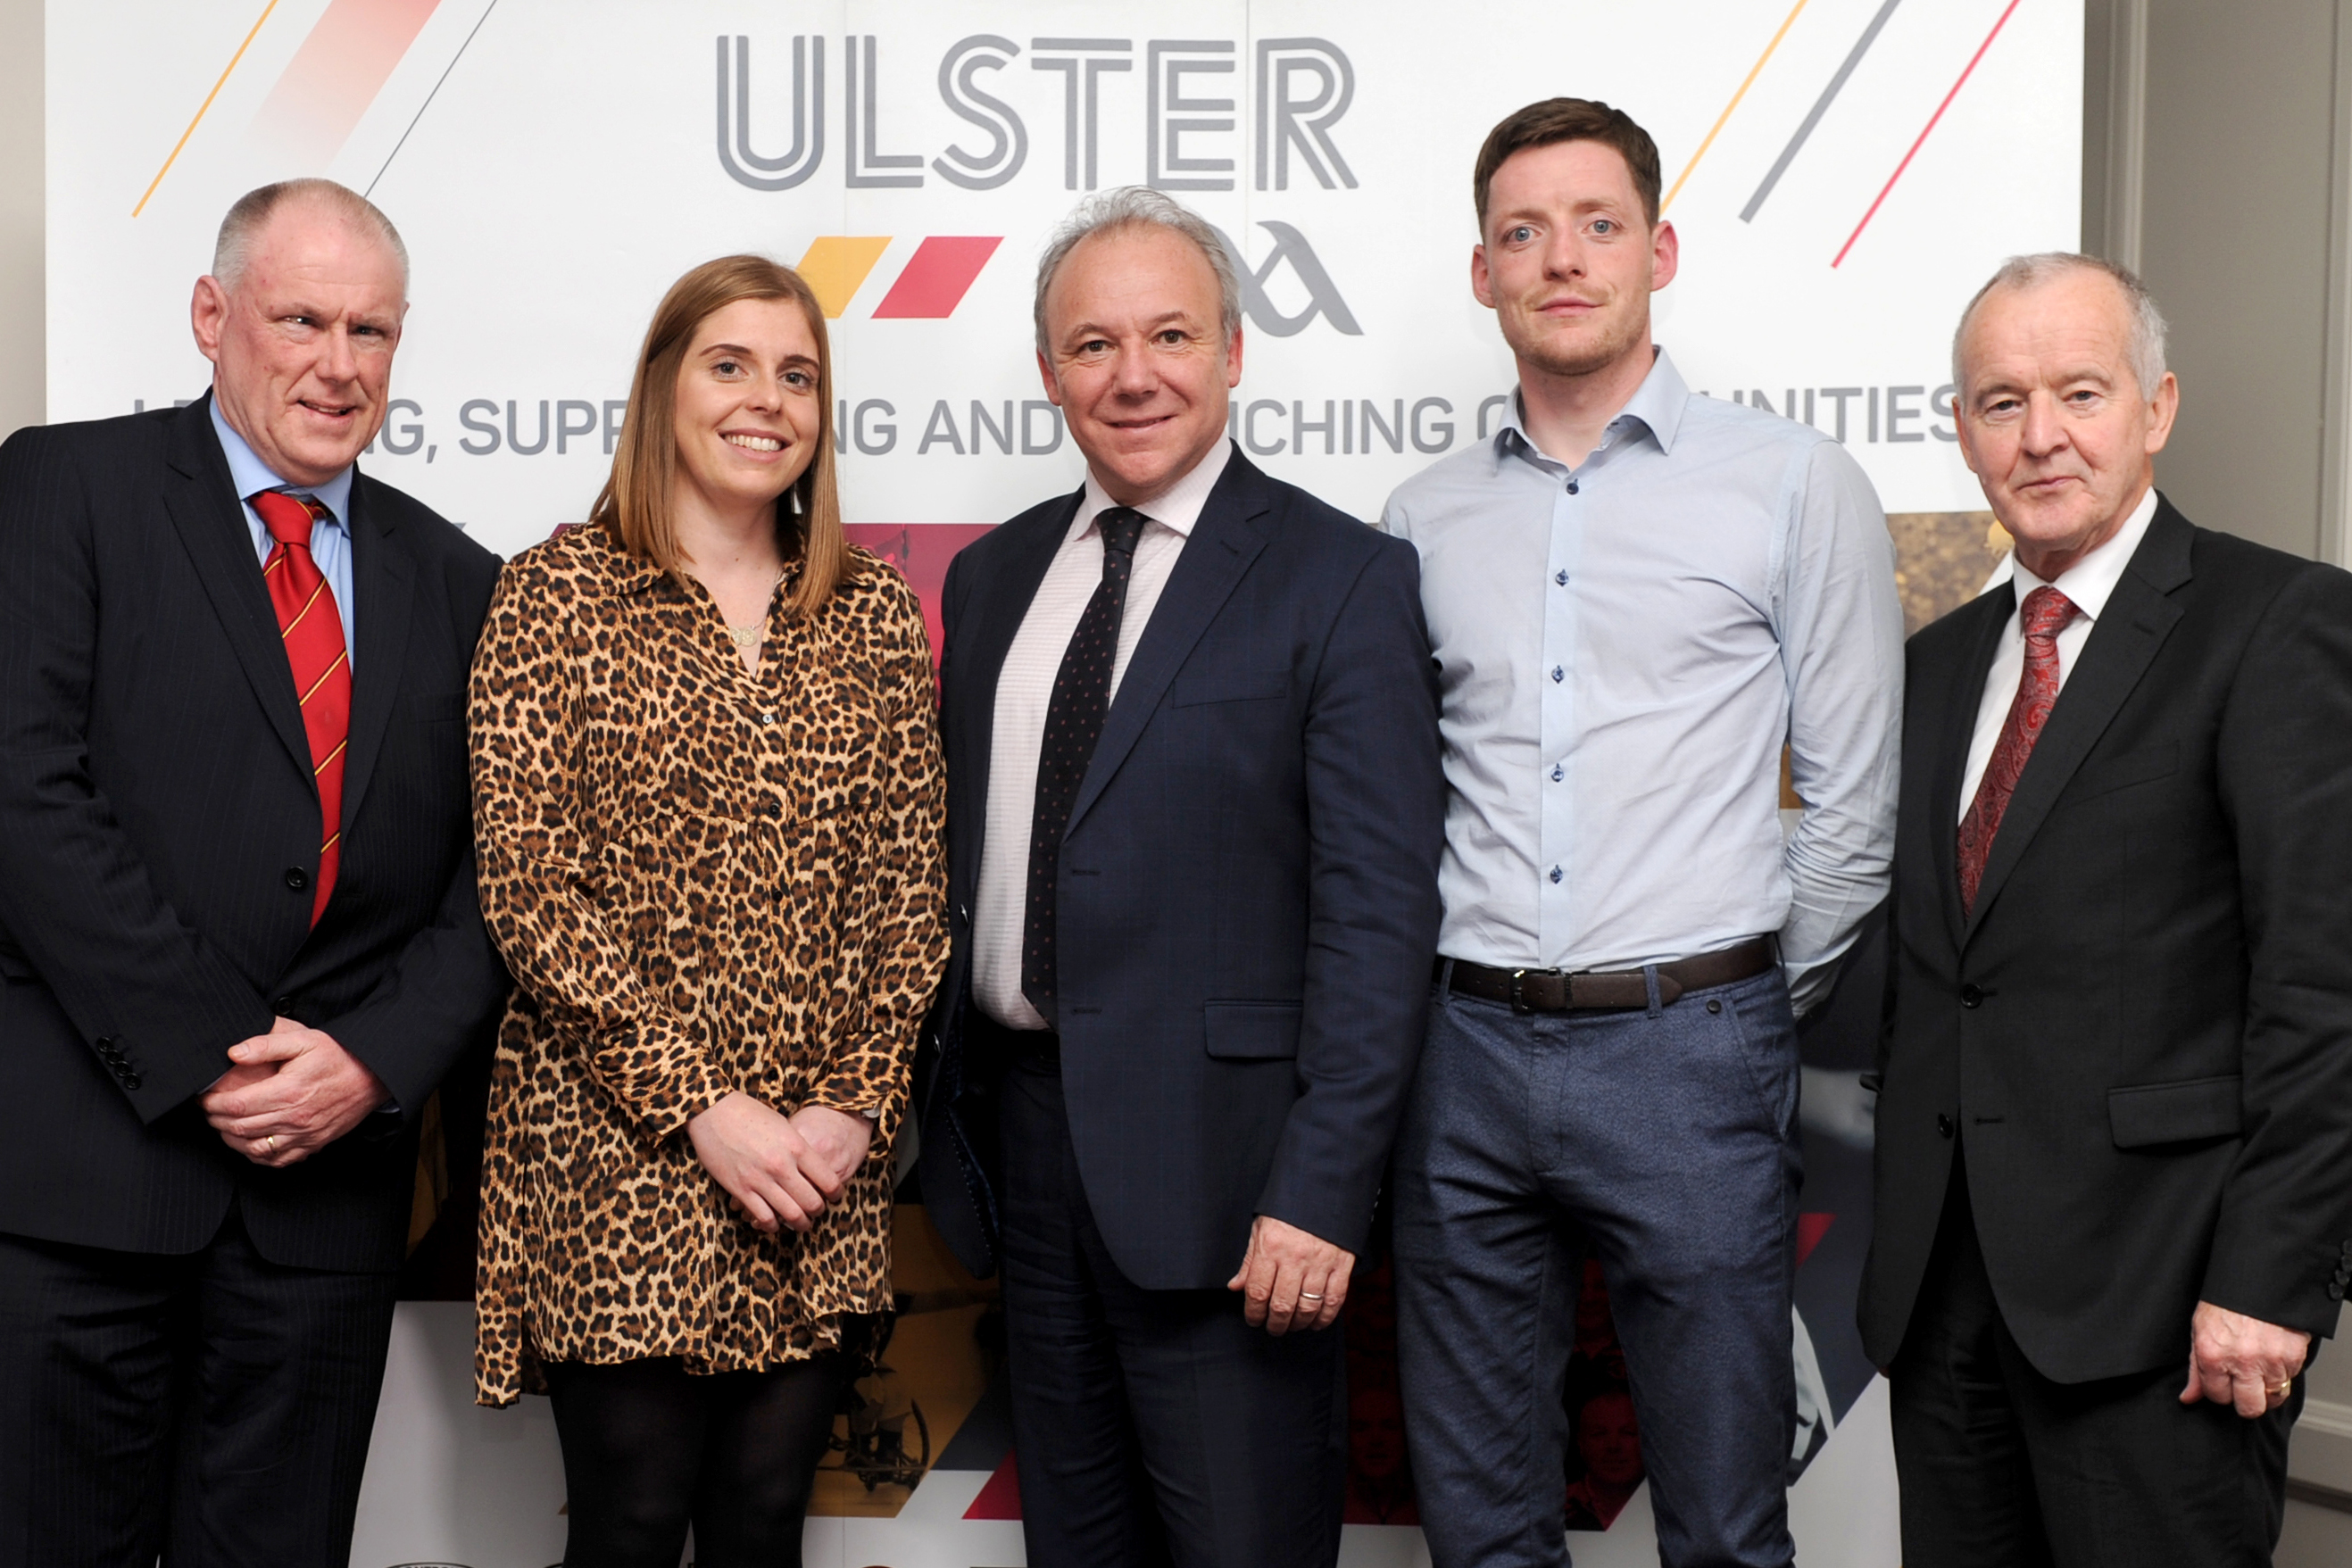 Ulster GAA hosts successful Sponsors Evening